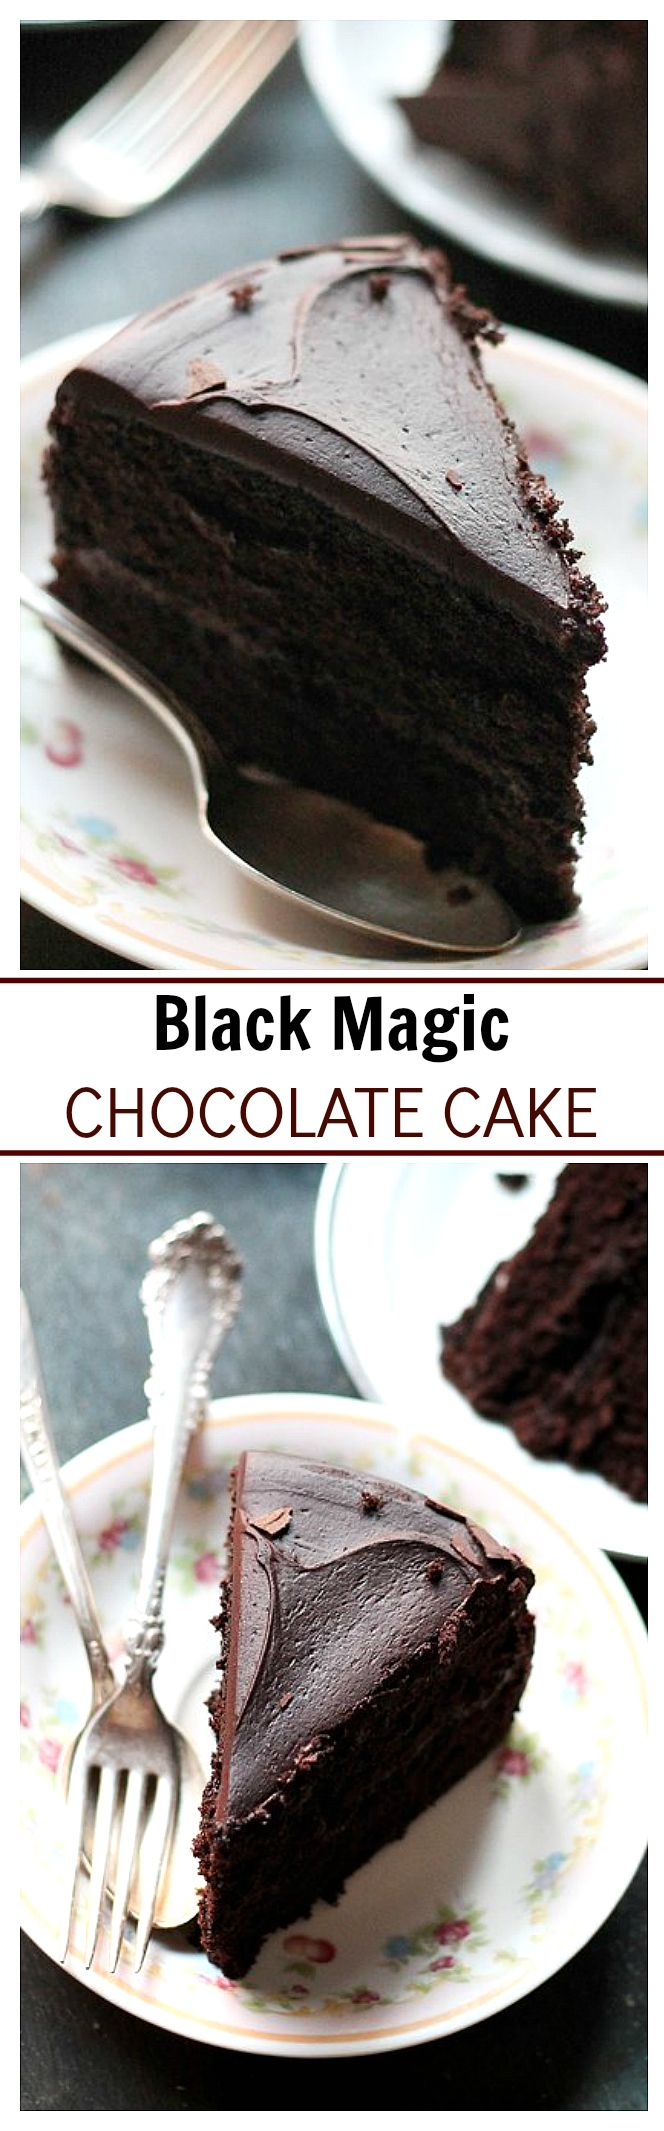 running Recipe shoes Chocolate cheap Dark Magic Cakes and   Dark black mens Chocolate   Chocolate Cakes  Cake Black